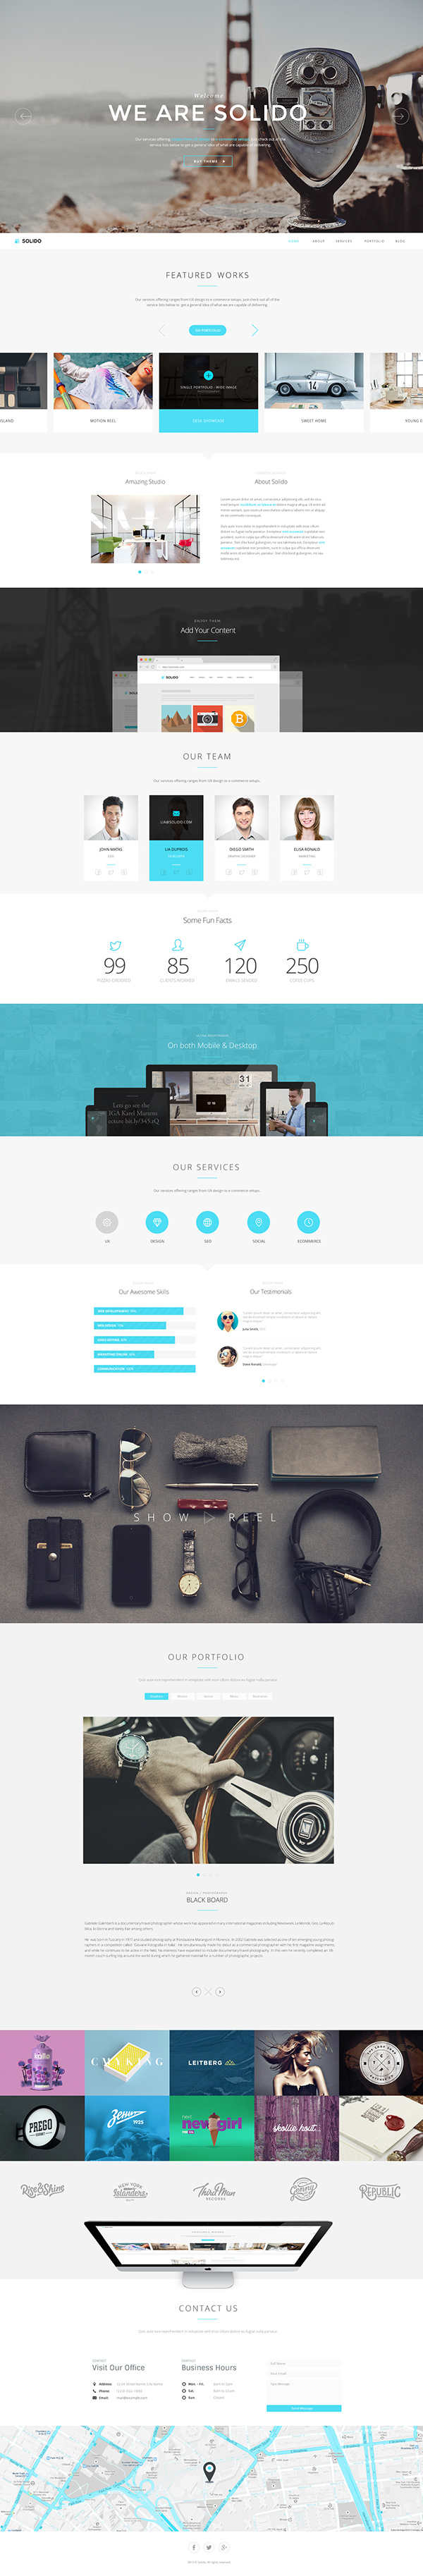 Solido - Responsive One Page Parallax Template - 2